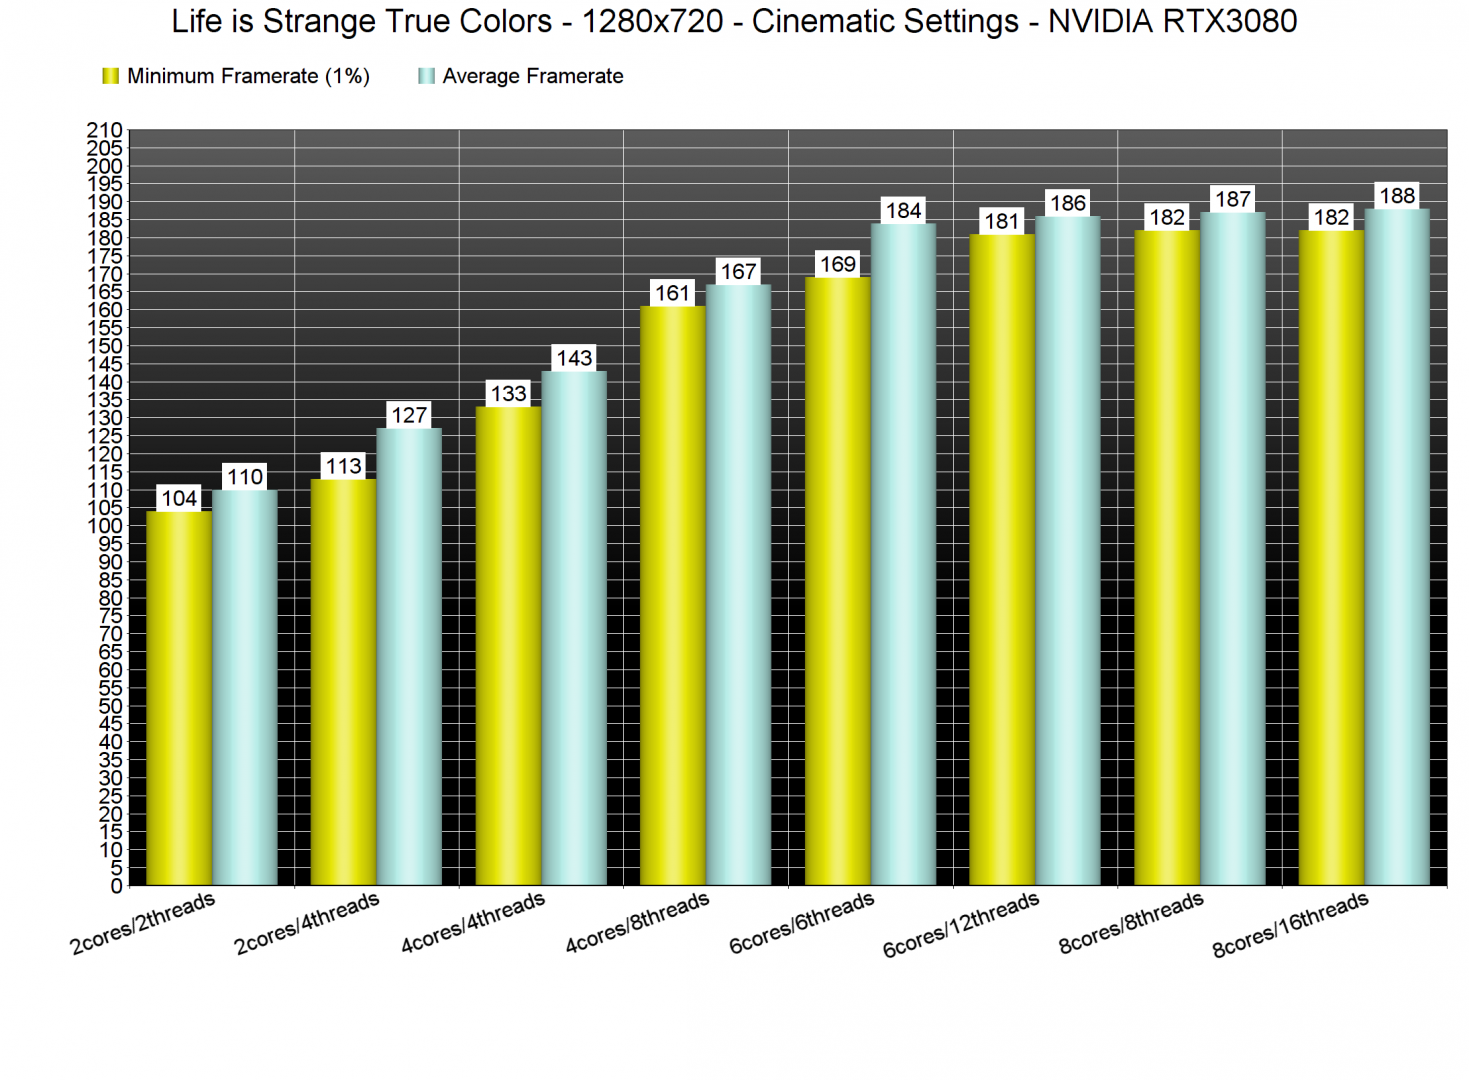 Life is Strange True Colors CPU benchmarks